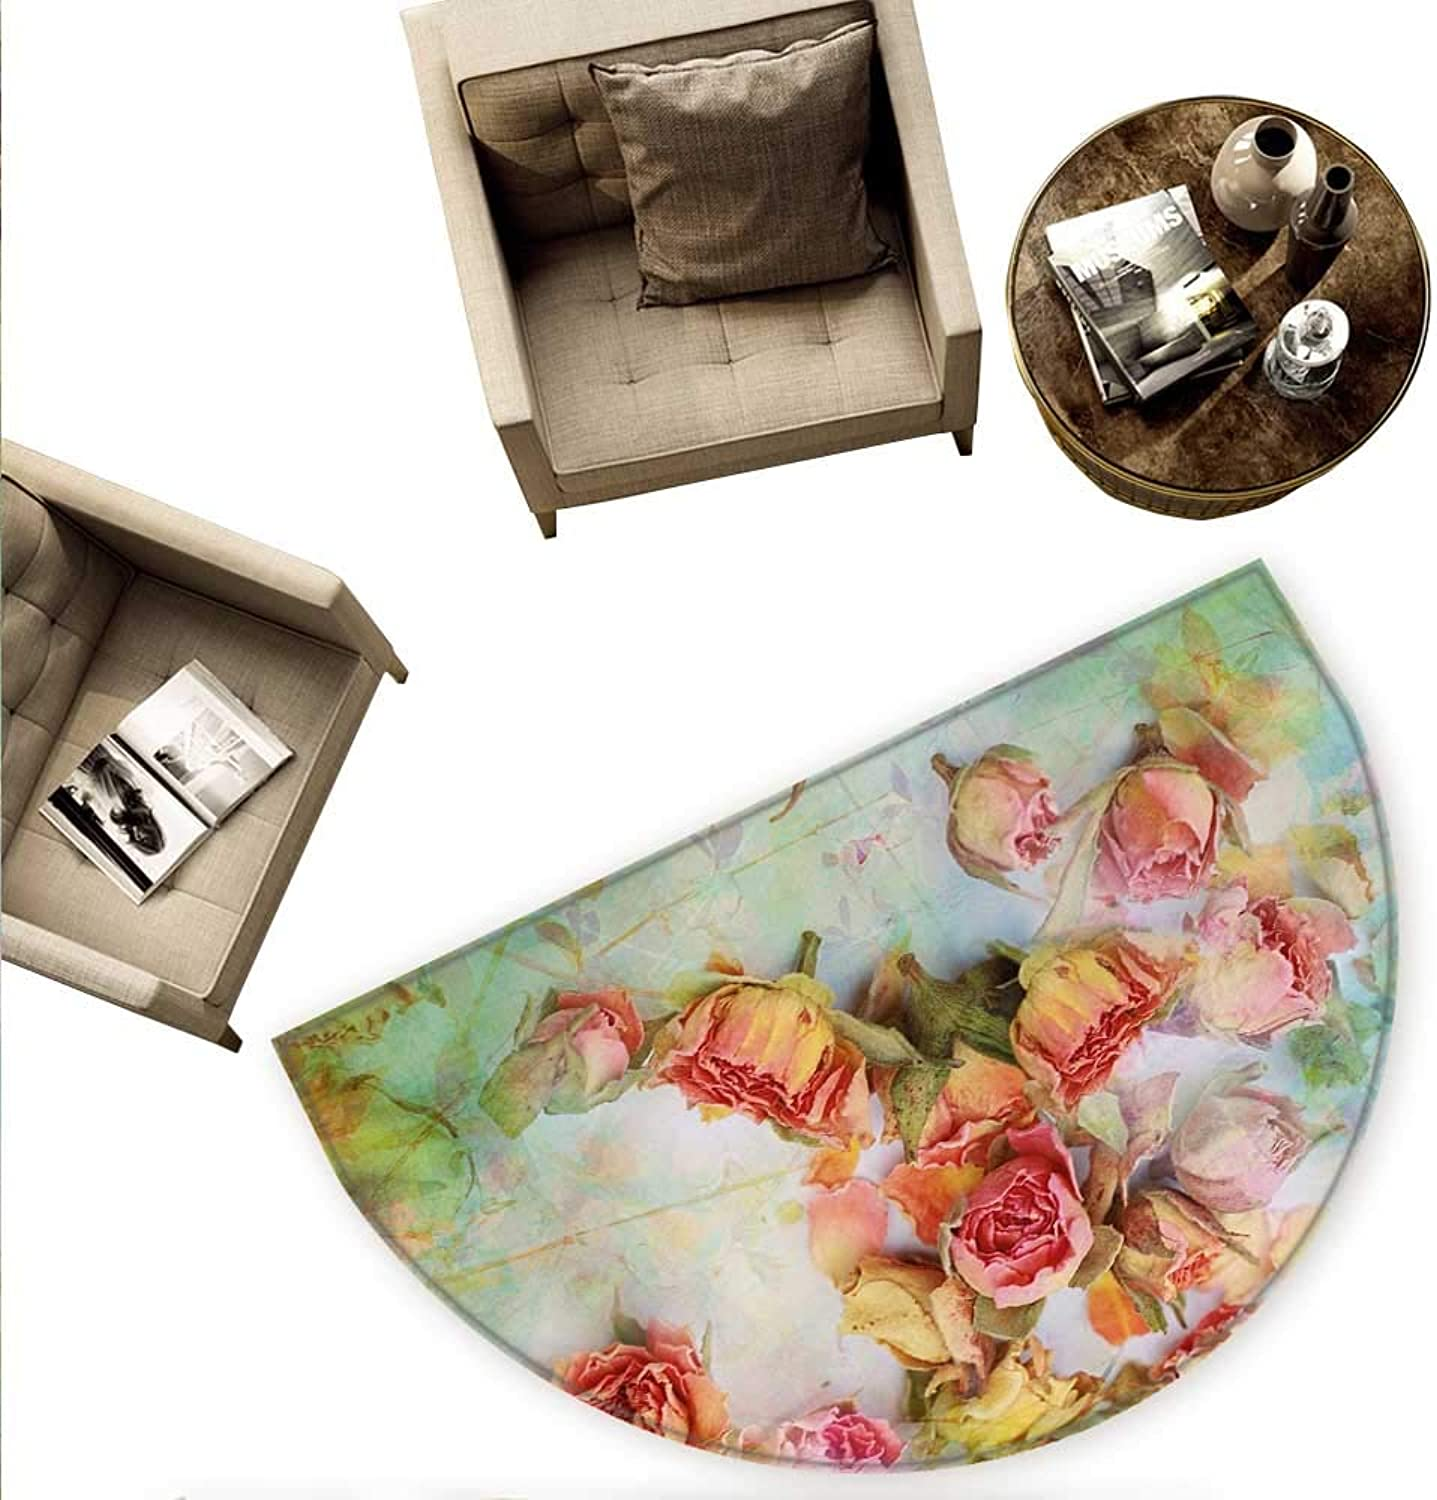 pink Semicircle Doormat Dried pinks Petals Leaves Nostalgic Fragile Floral Vintage Abstract View Artistic Halfmoon doormats H 78.7  xD 118.1  Multicolor